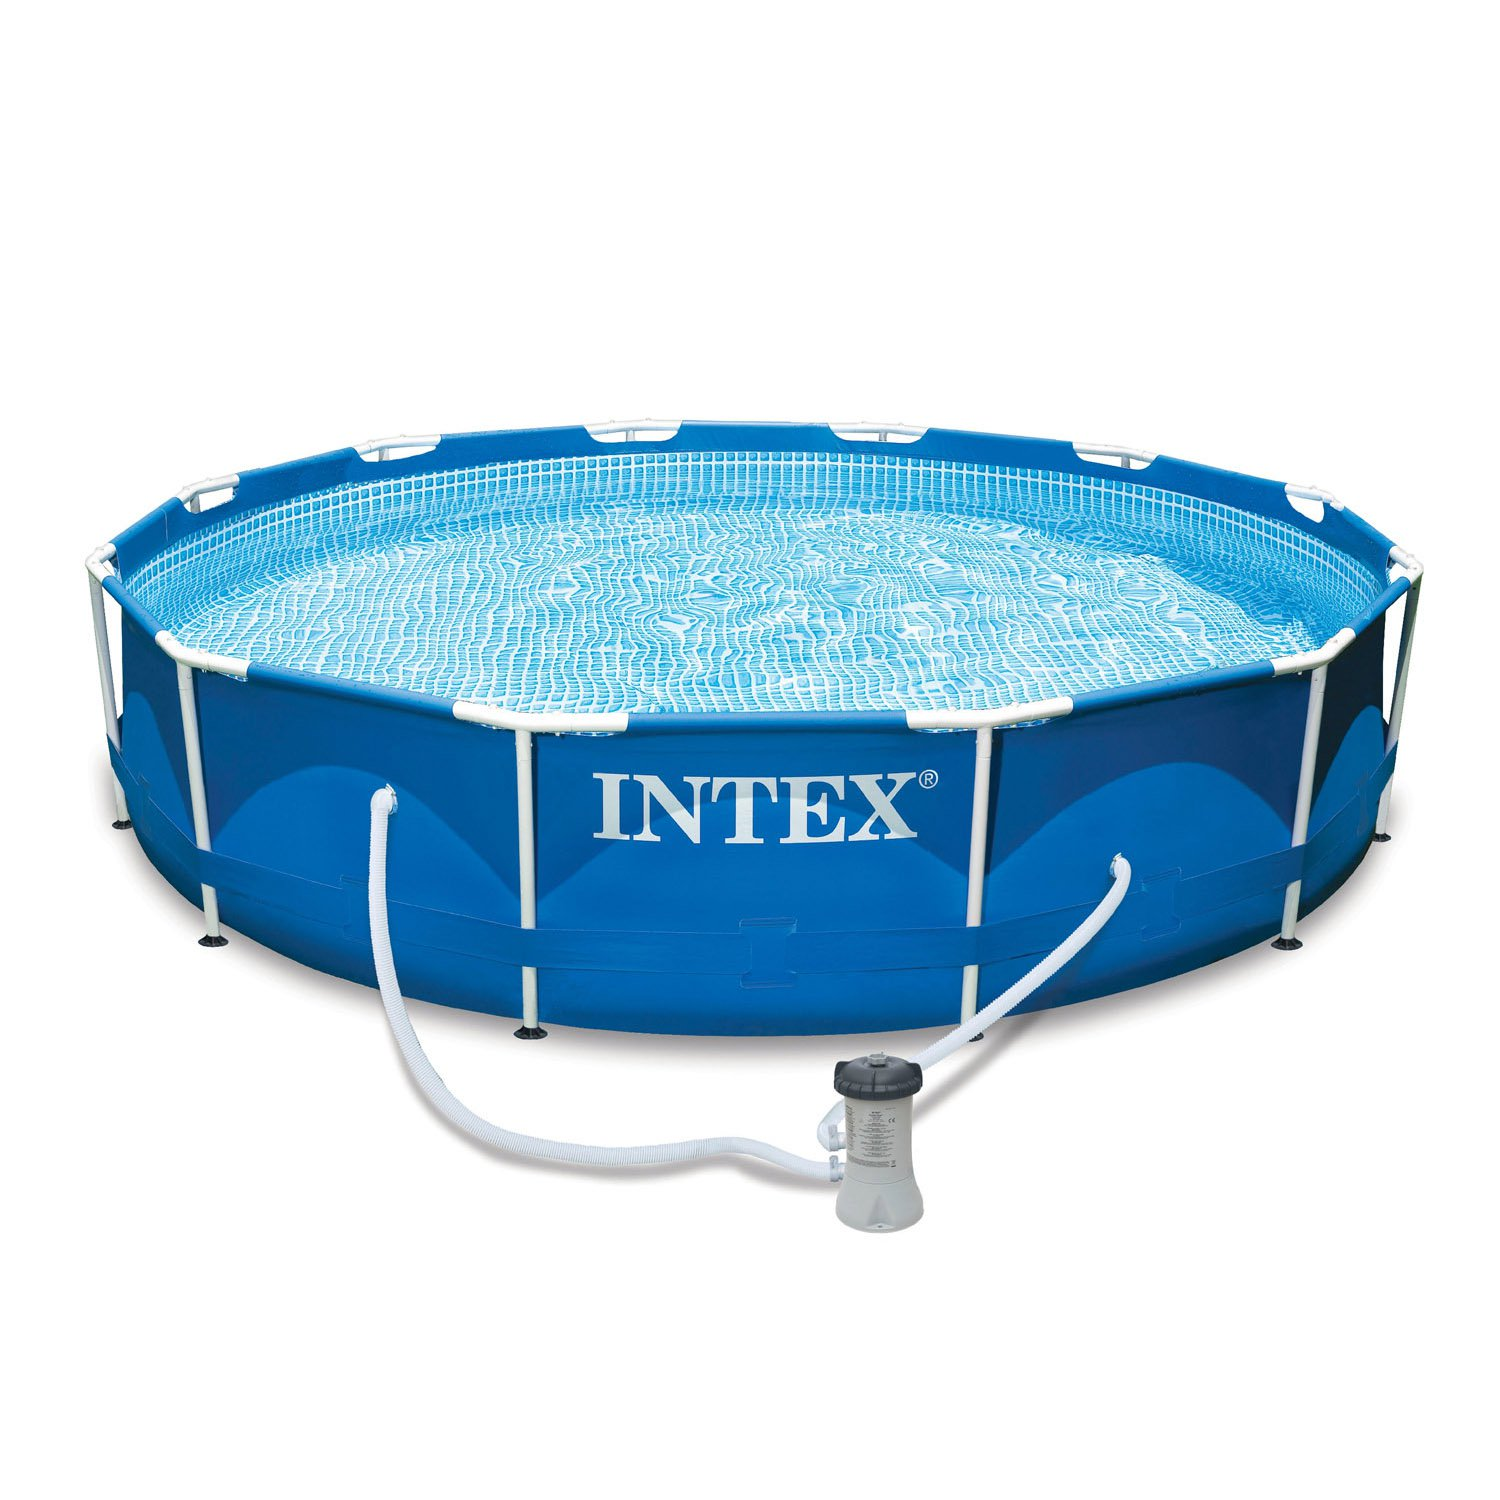 "Intex 12' x 30"" Metal Frame Set Above Ground Swimming Pool with Filter 